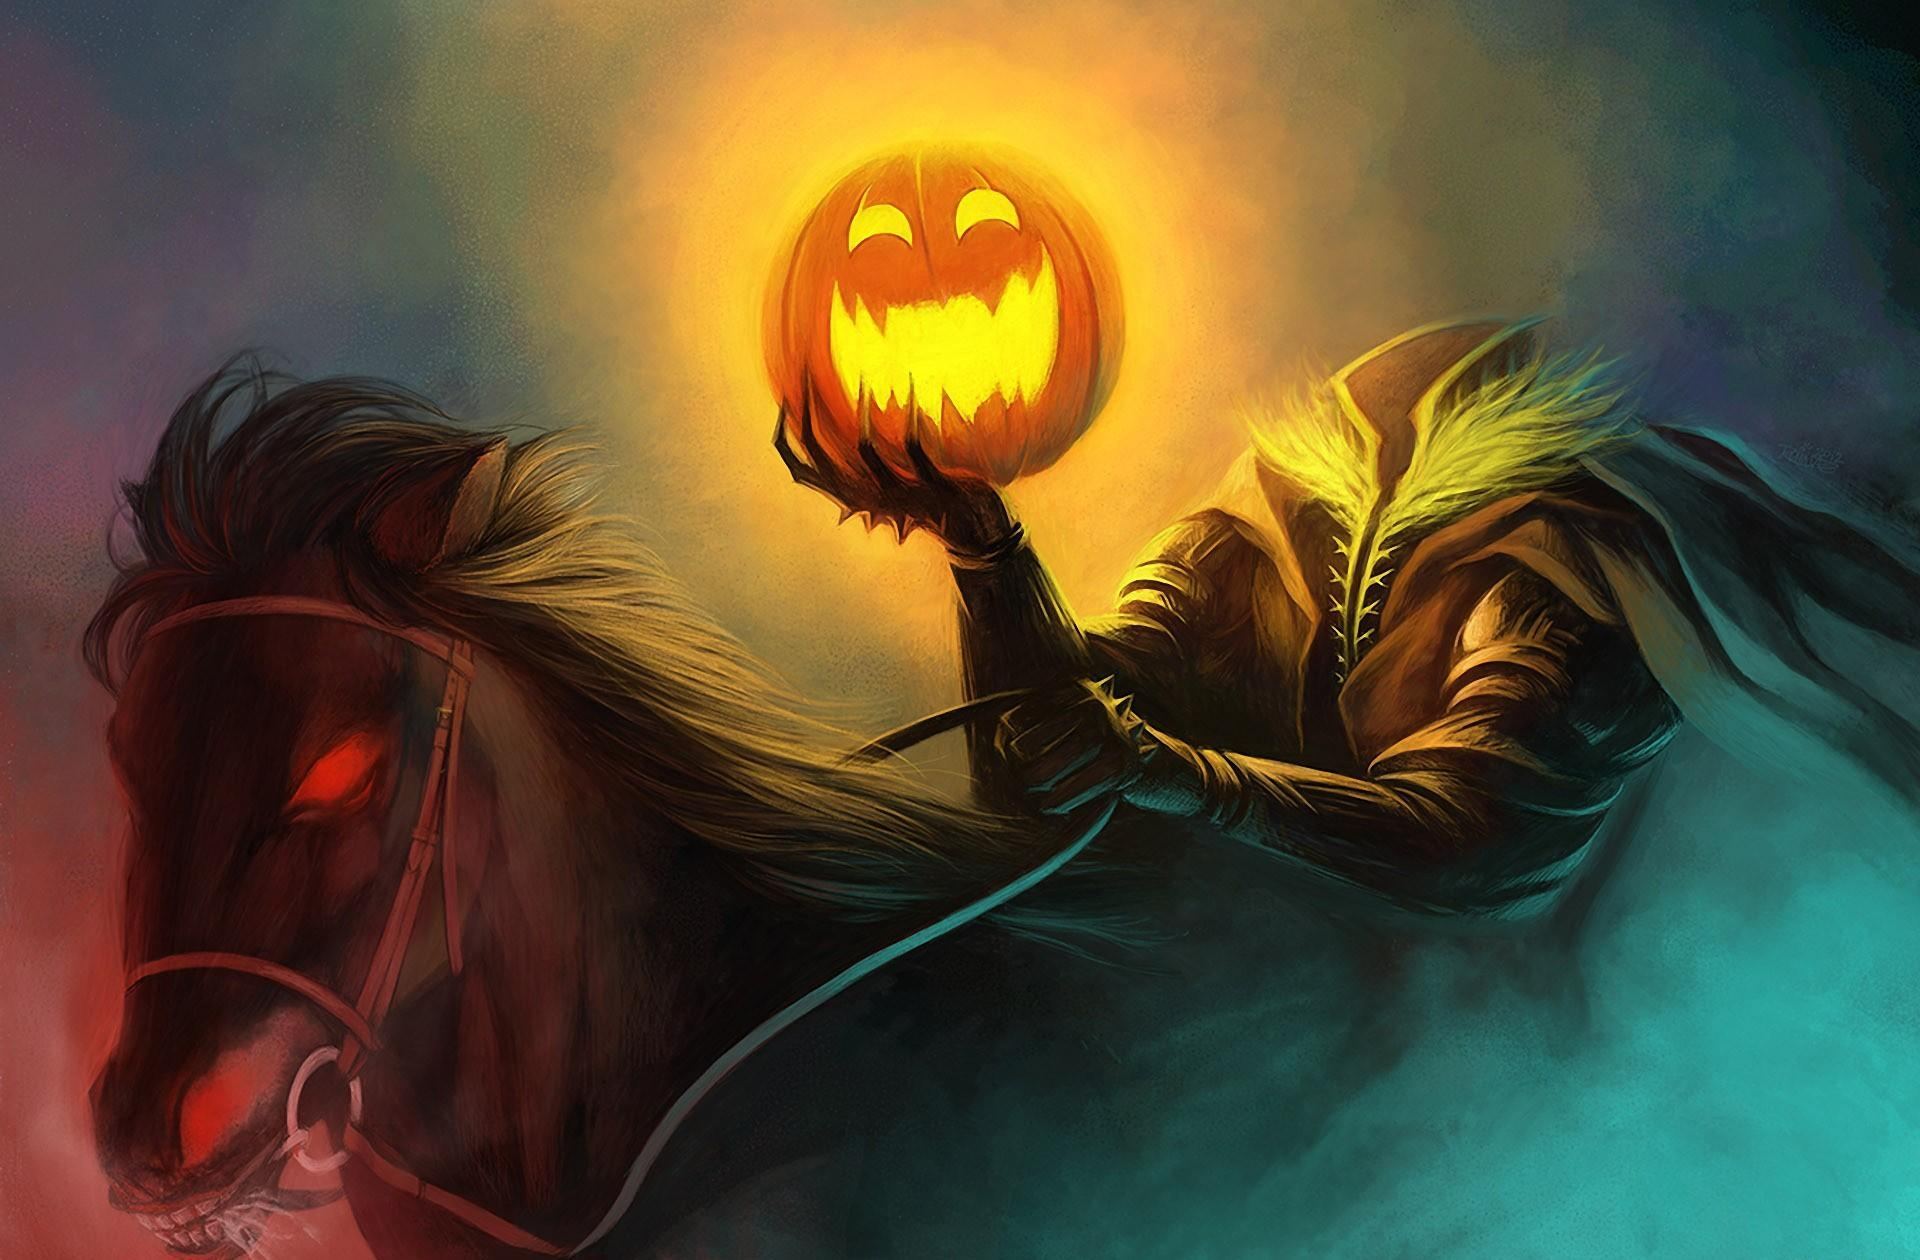 93218 download wallpaper Pumpkin, Halloween, Holidays, Holiday, Horse, Headless Horseman, Headless Rider screensavers and pictures for free